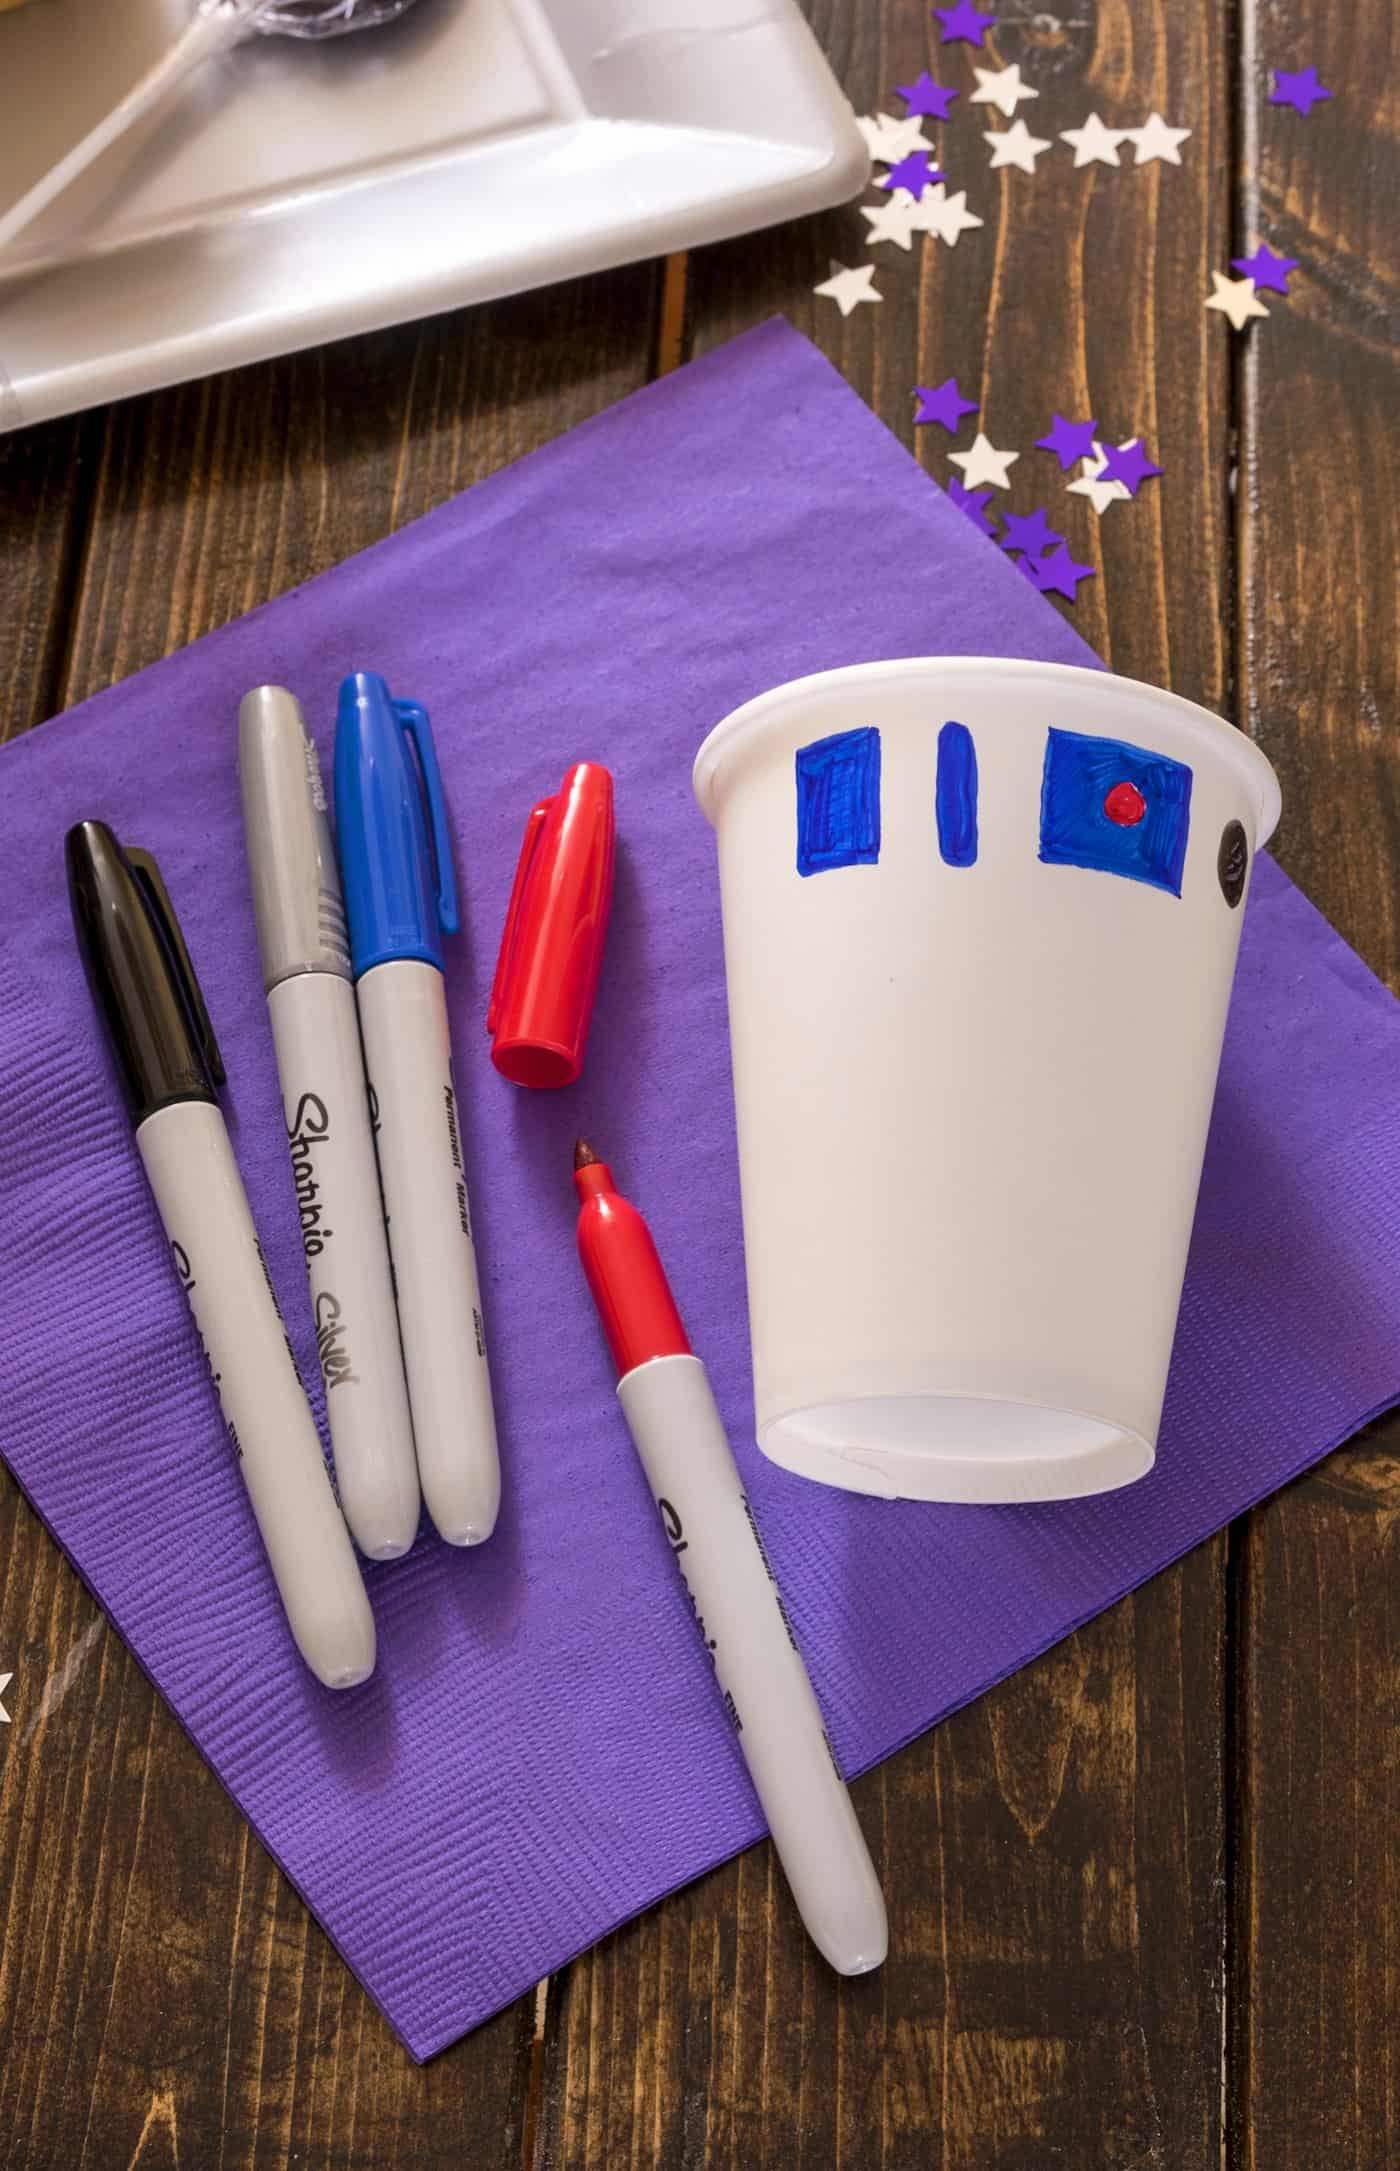 Learn how to have a Star Wars birthday party without blowing your kid's college fund! Here are my favorite tips and ideas including an R2-D2 DIY cup.